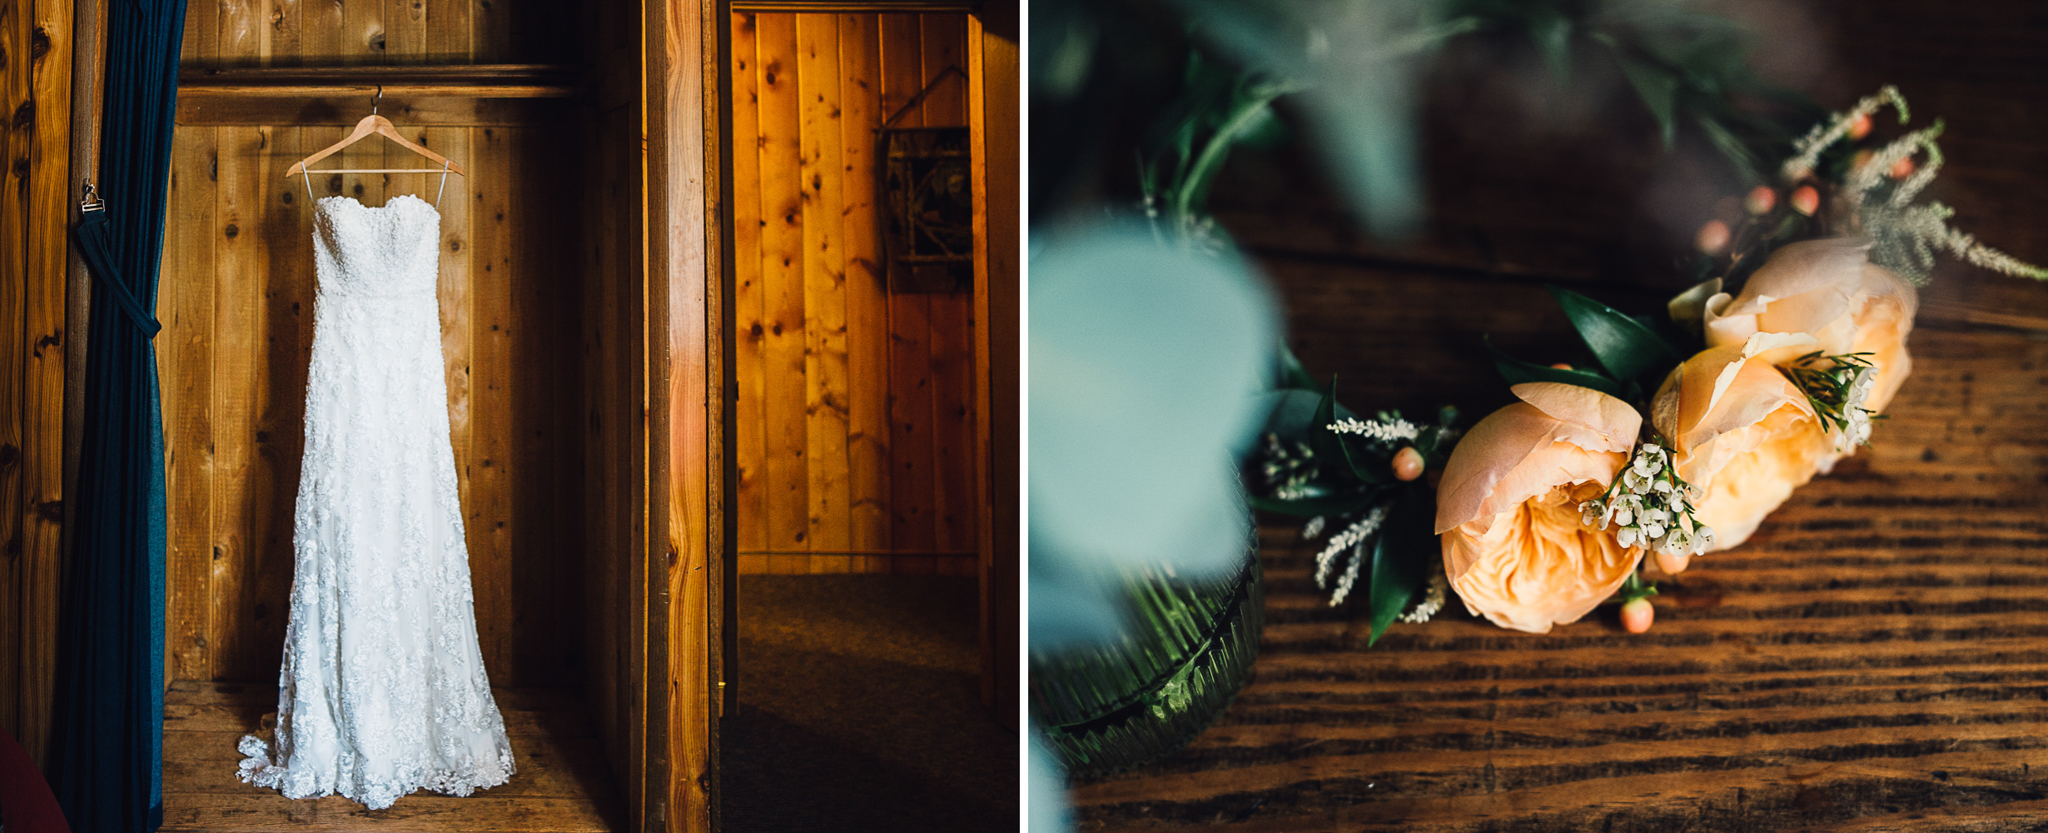 ©Isaiah & Taylor Photography - Pine Rose Cabin - Lake Arrowhead - Los Angeles Wedding Photographer-005-2.jpg